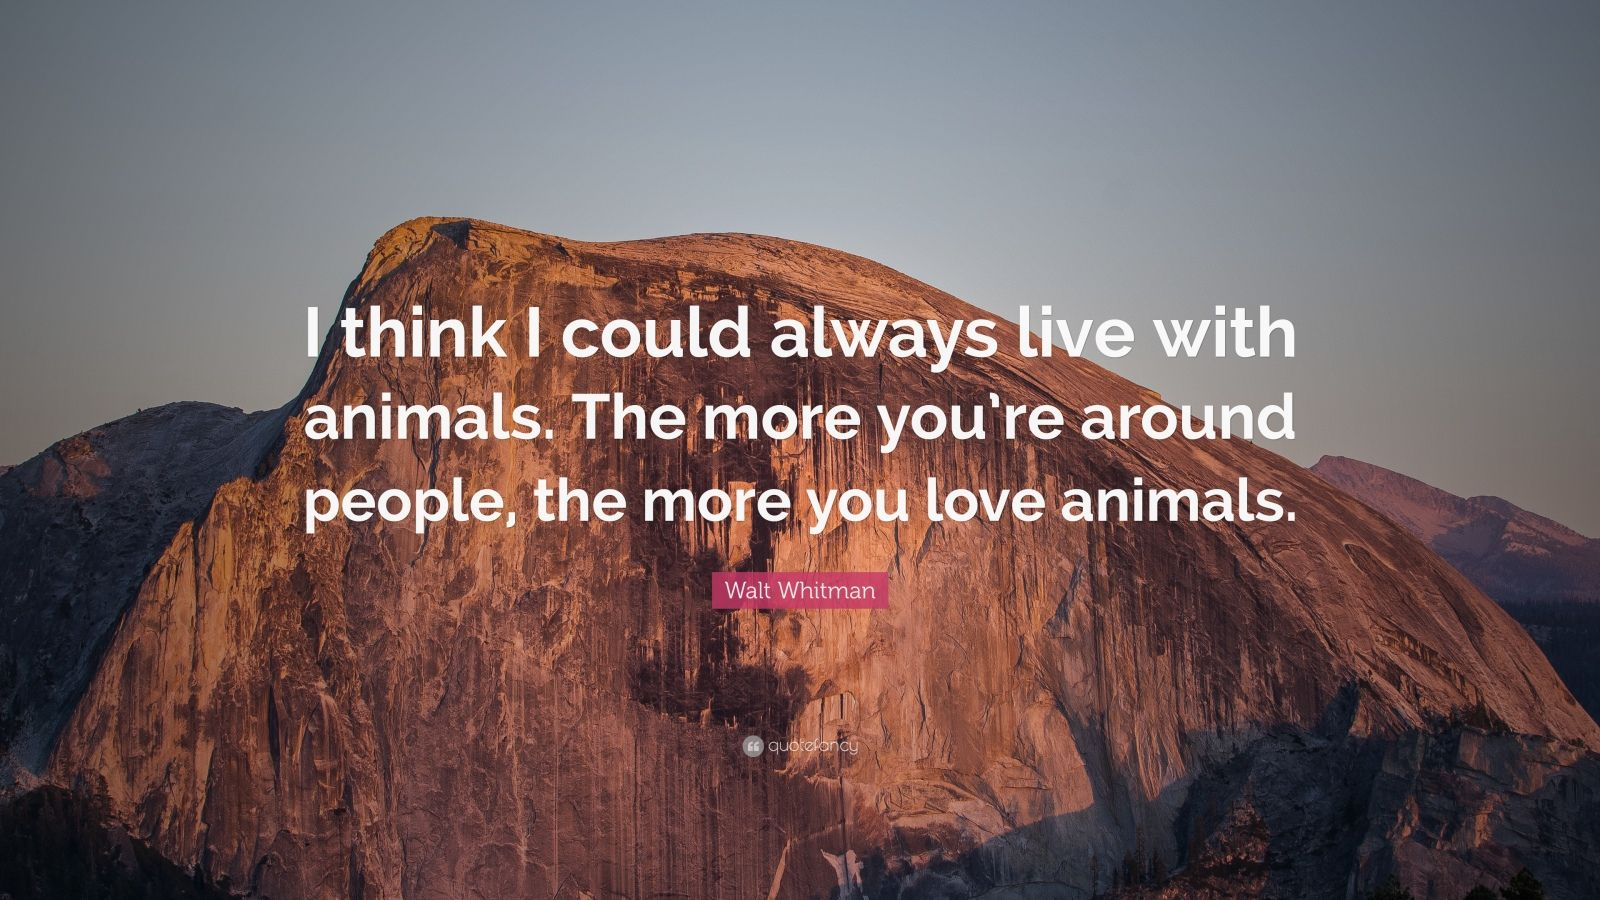 live with animals whitman Animals by walt whitman  probable questions and answers   i think i could turn and live with animals, they are so placid and self-contain'd.